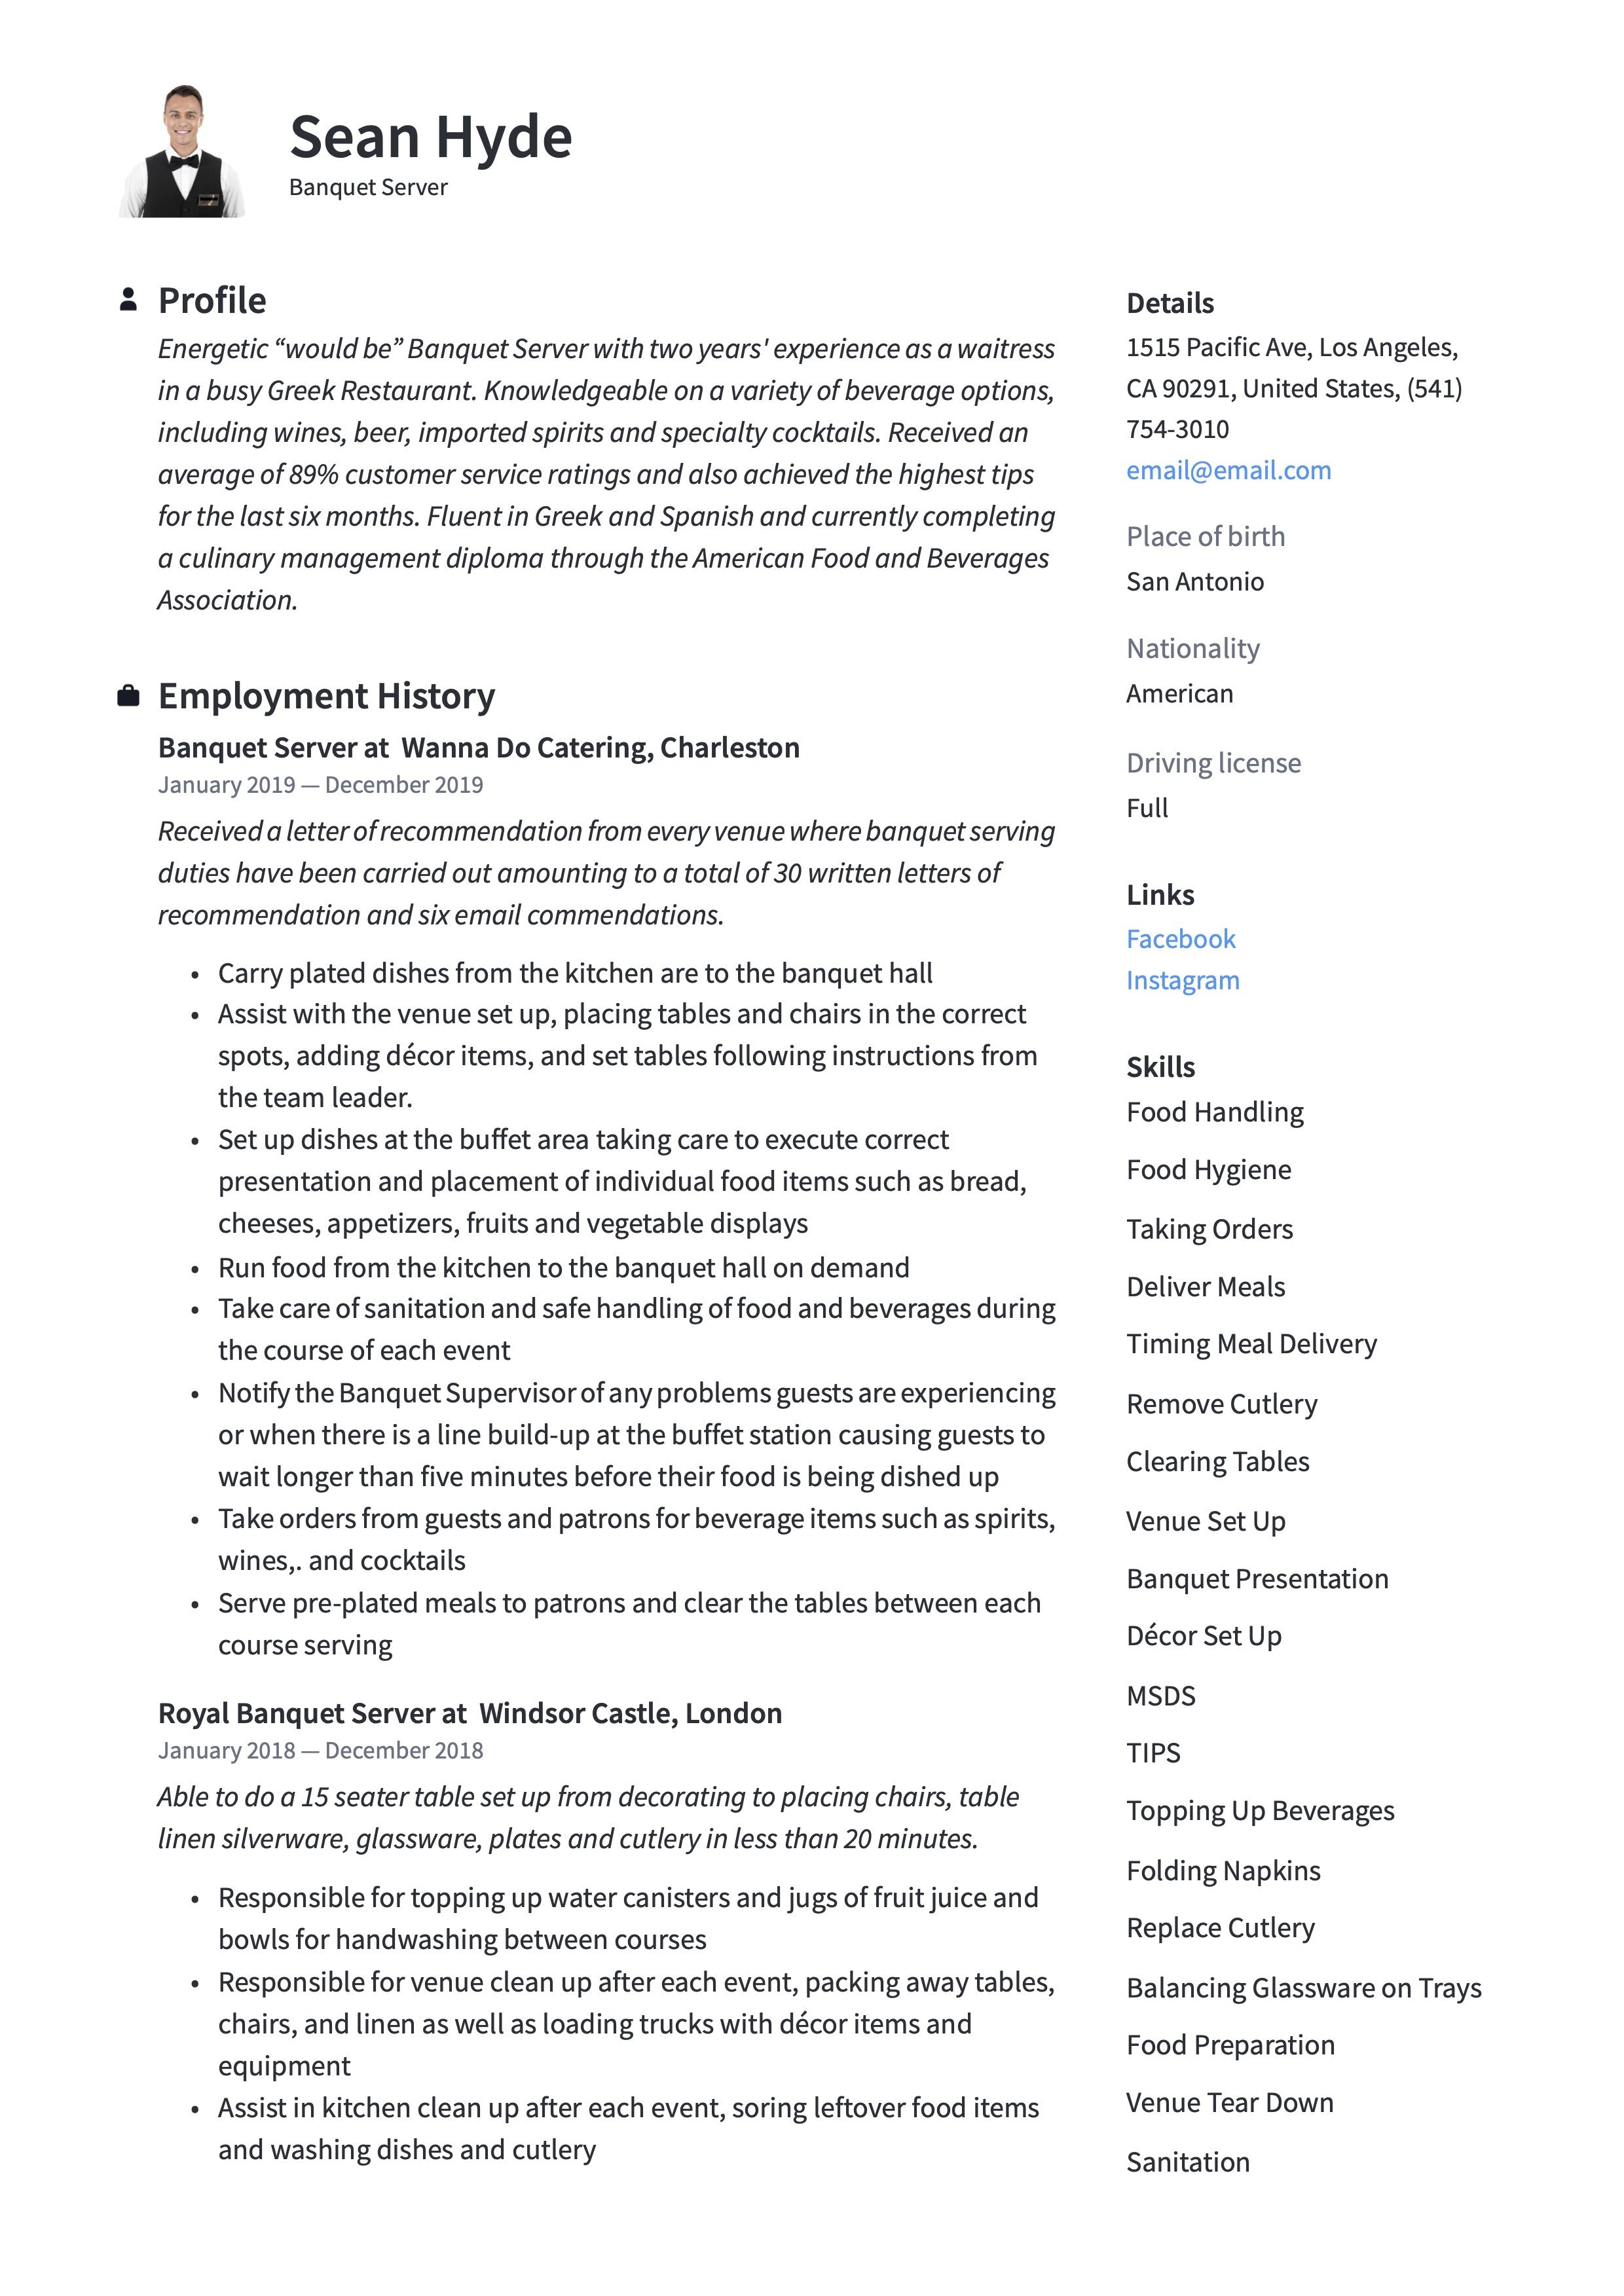 Banquet server resume sample in 2020 resume examples